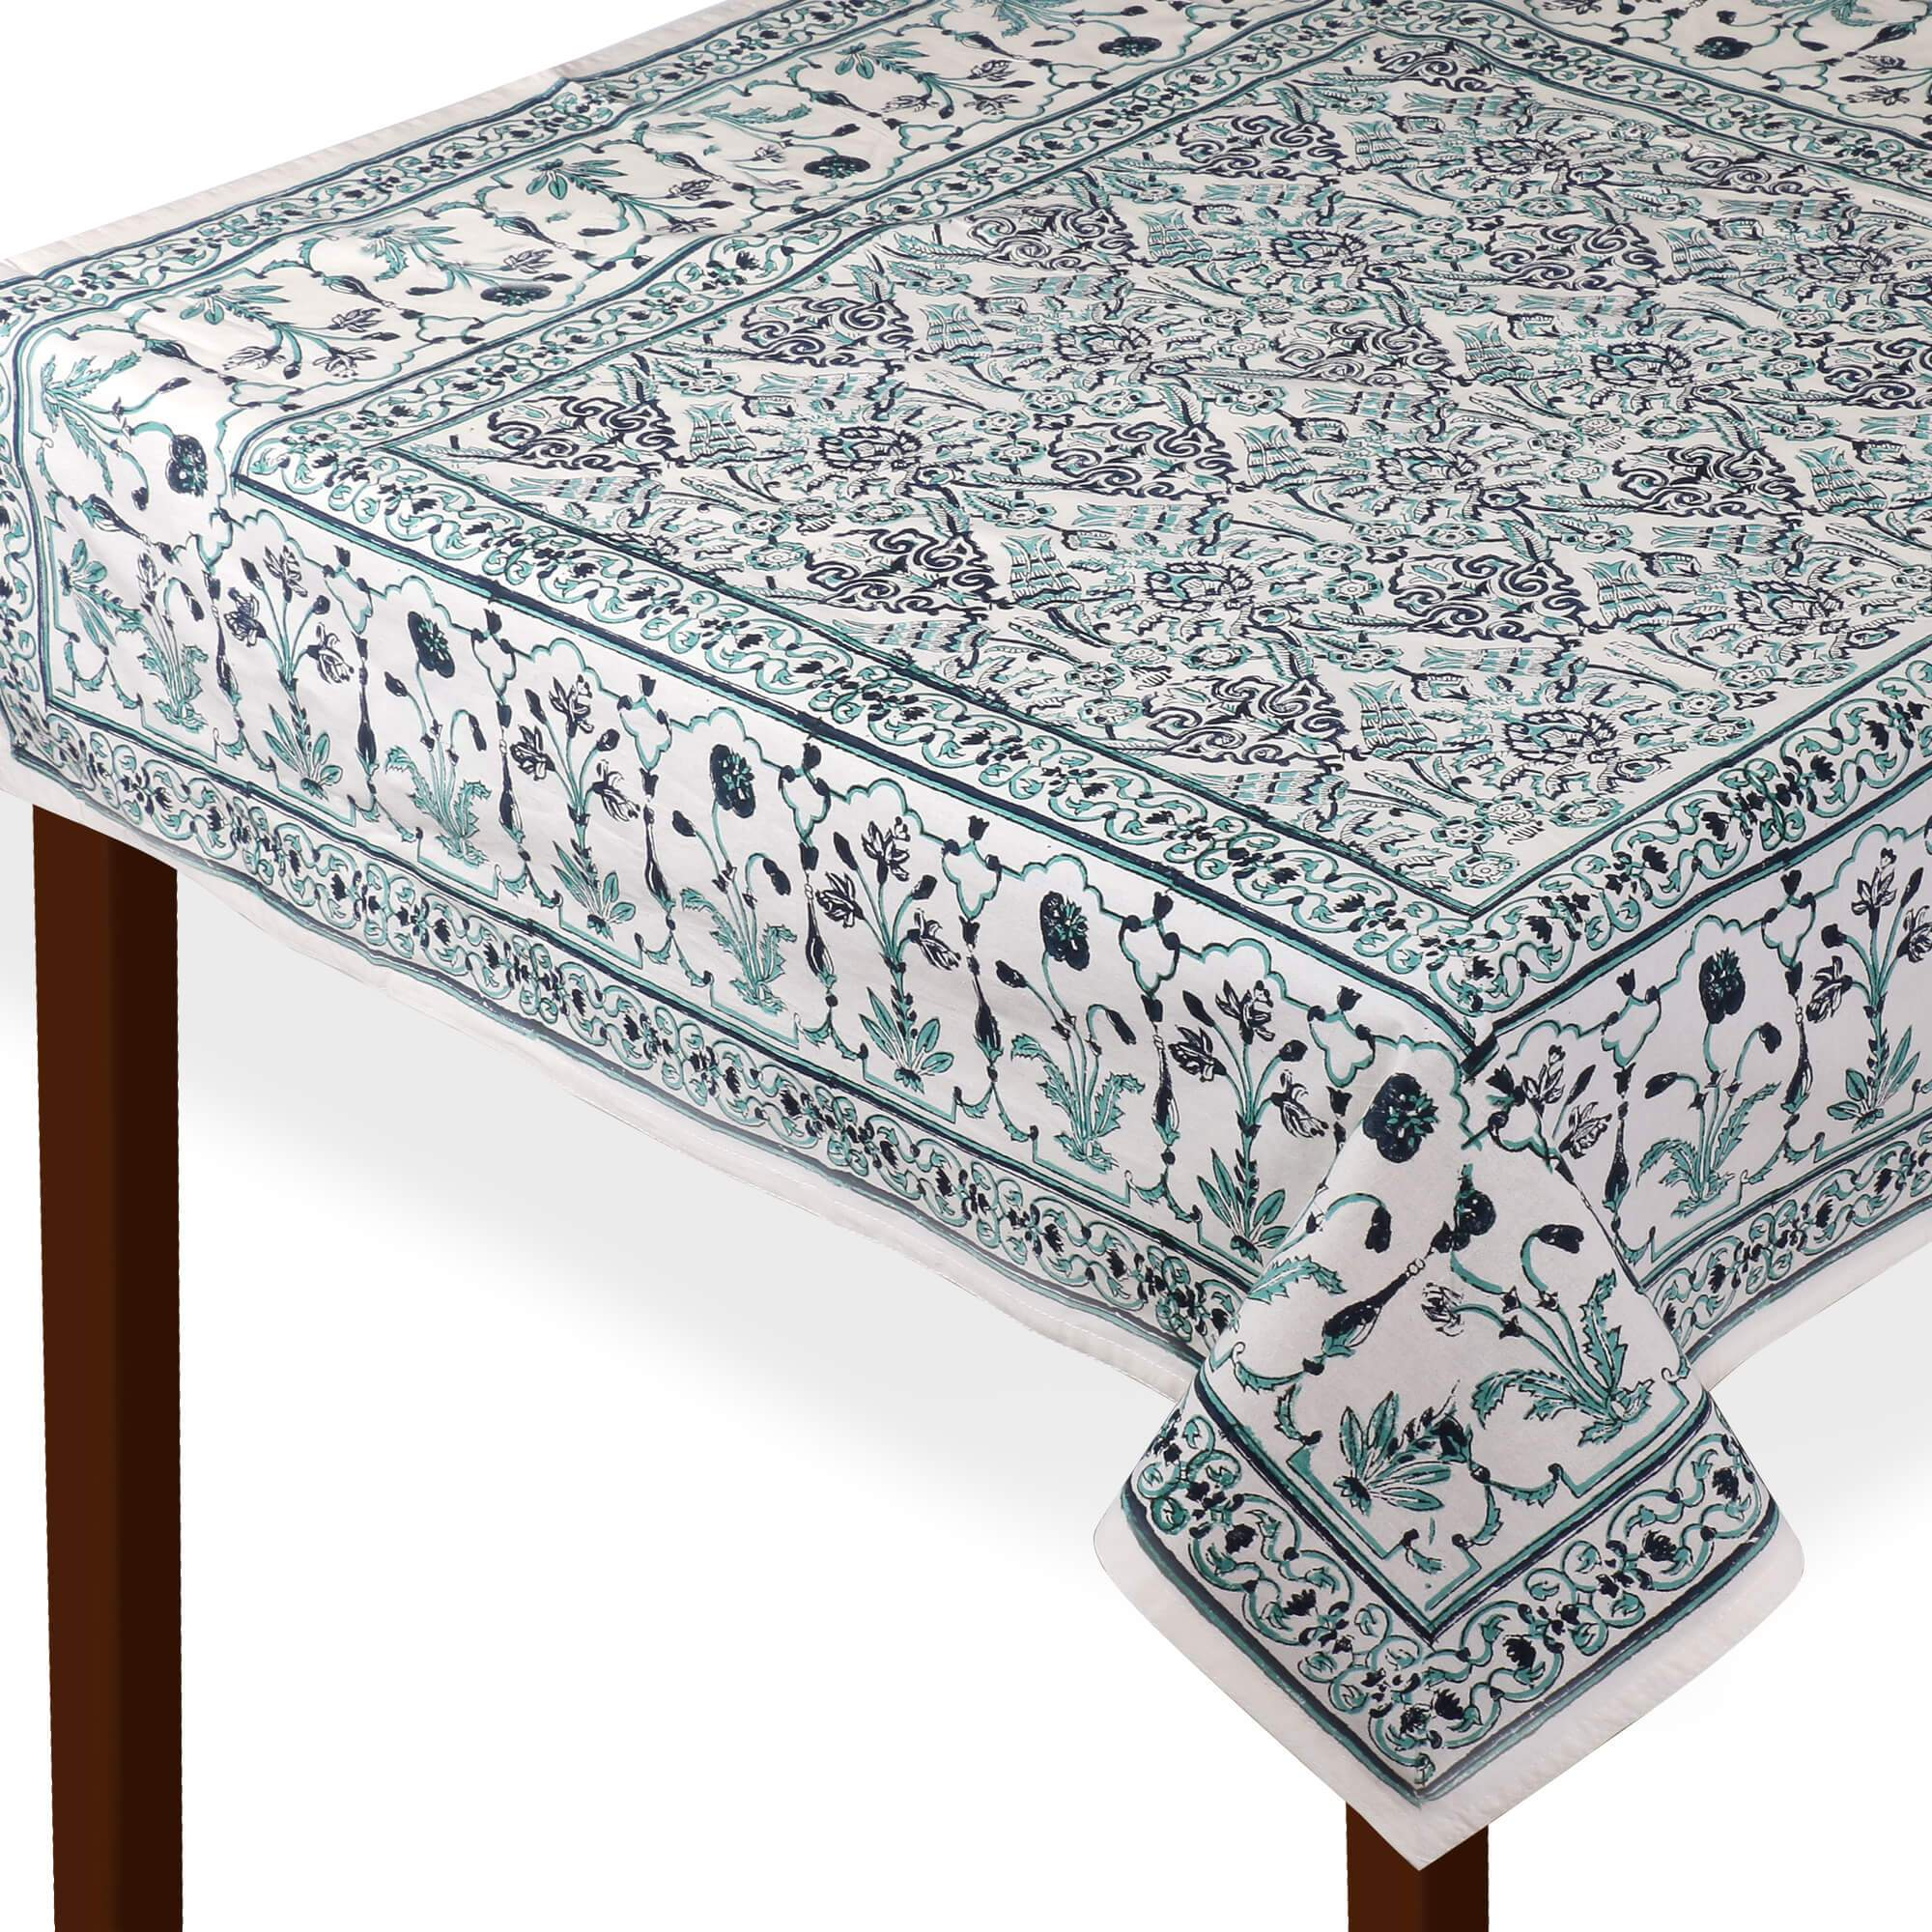 Jaipuri Square Cotton Table Cover - 7869